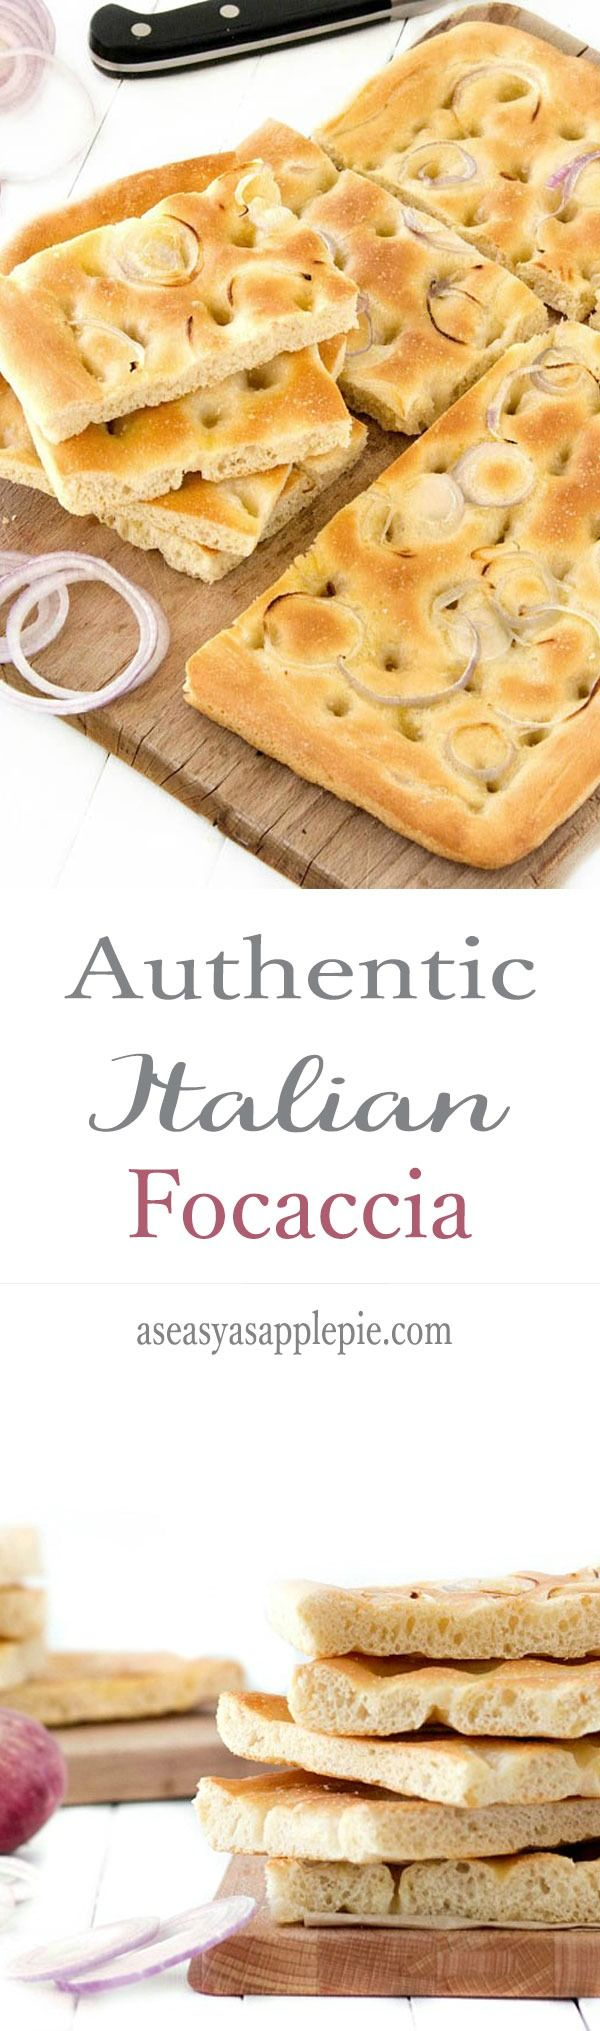 This authentic Italian focaccia is very easy and quick to make, perfect recipe for beginners  Focaccia is very versatile, it can be eaten plain, with different toppings, as a pre-dinner nibble or it can be used for sandwiches